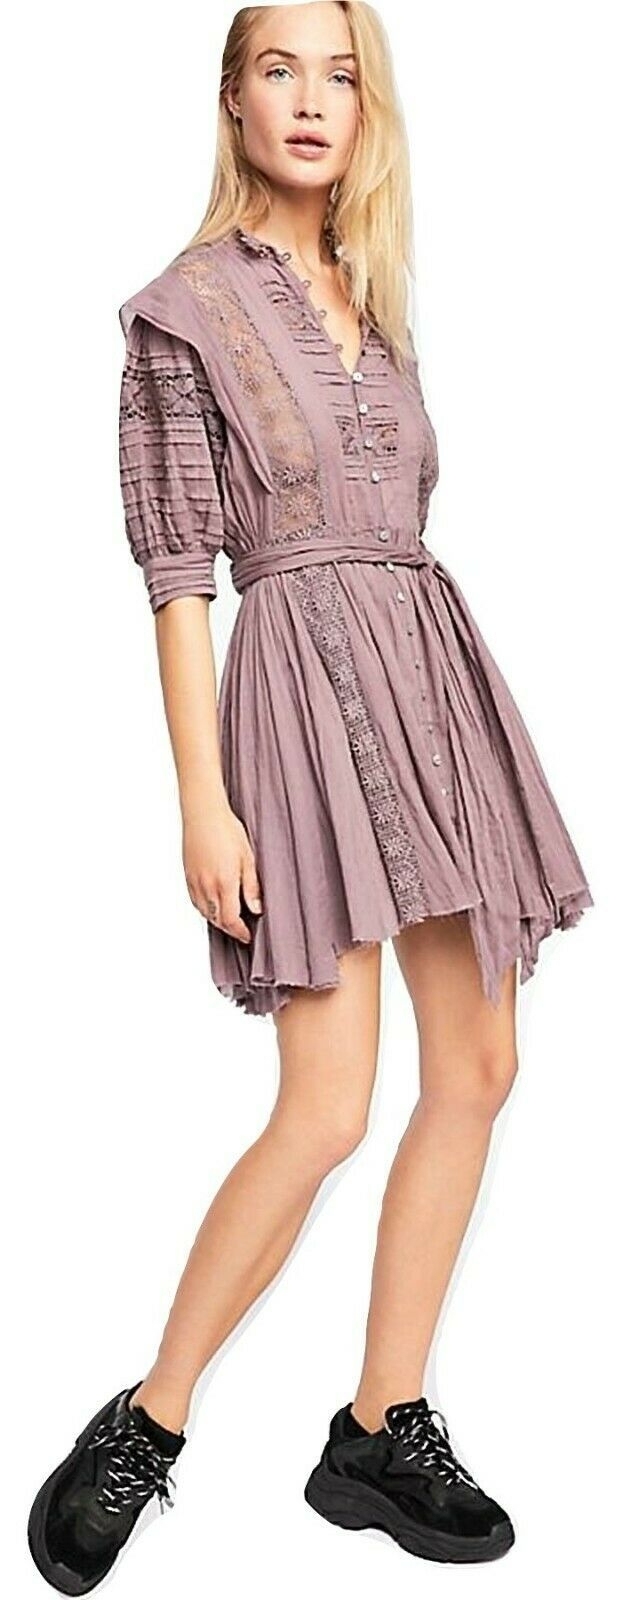 Free People Sydney Lace Pintucked Plum Dress Size Small